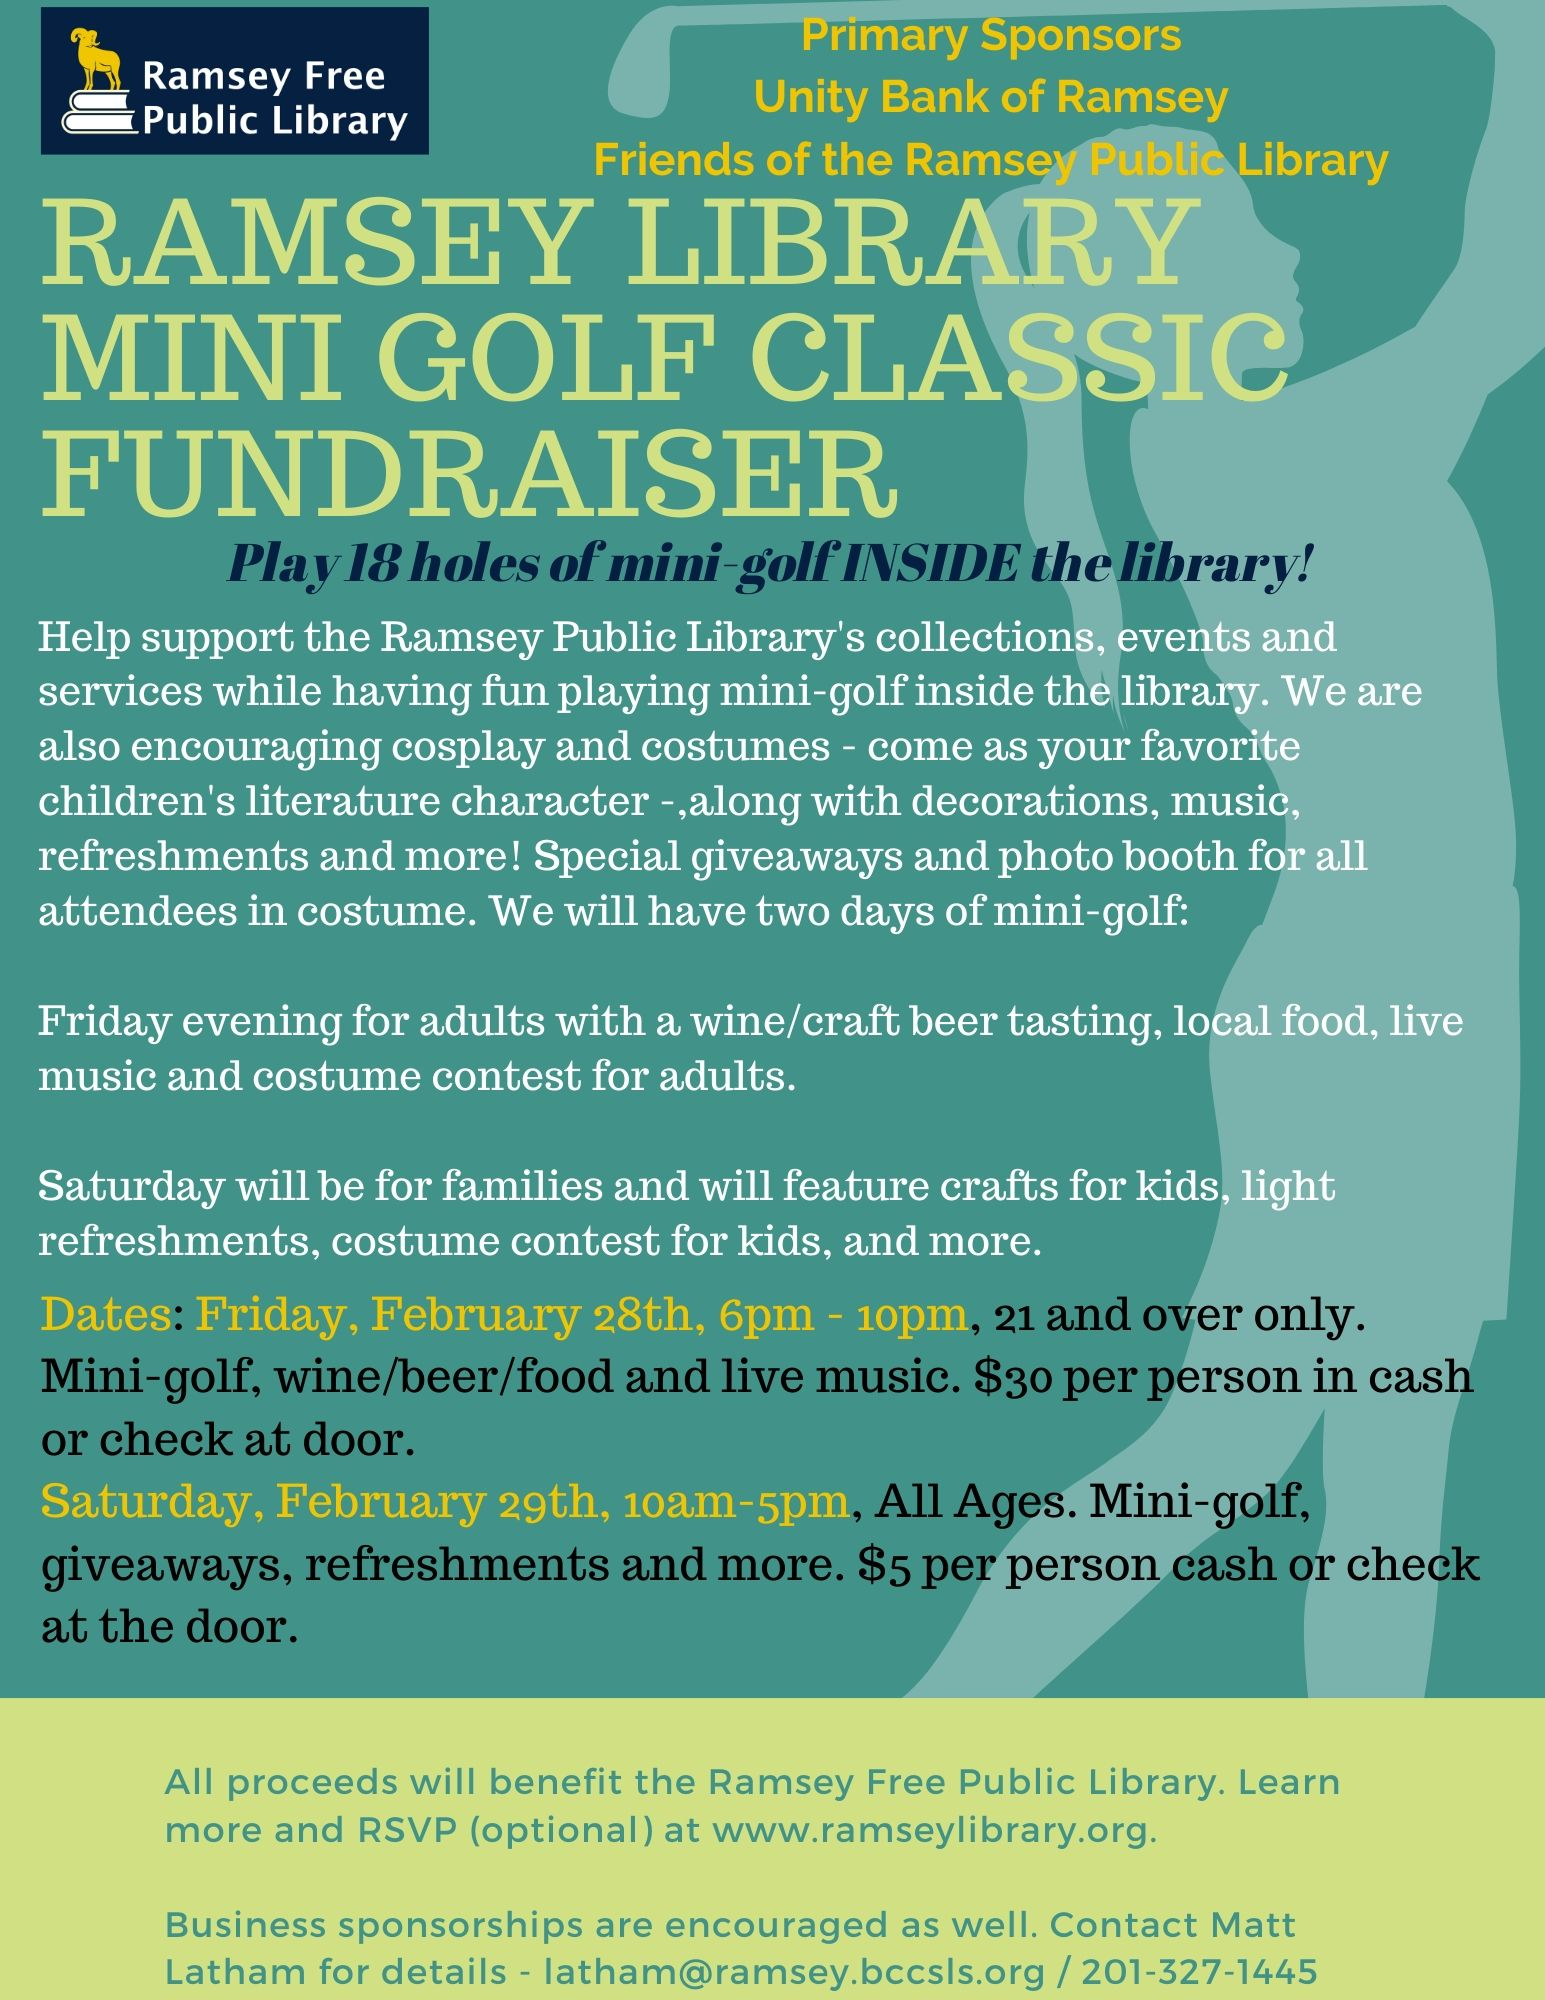 Mini-Golf Fundraiser and Wine/Beer Tasting for Adults